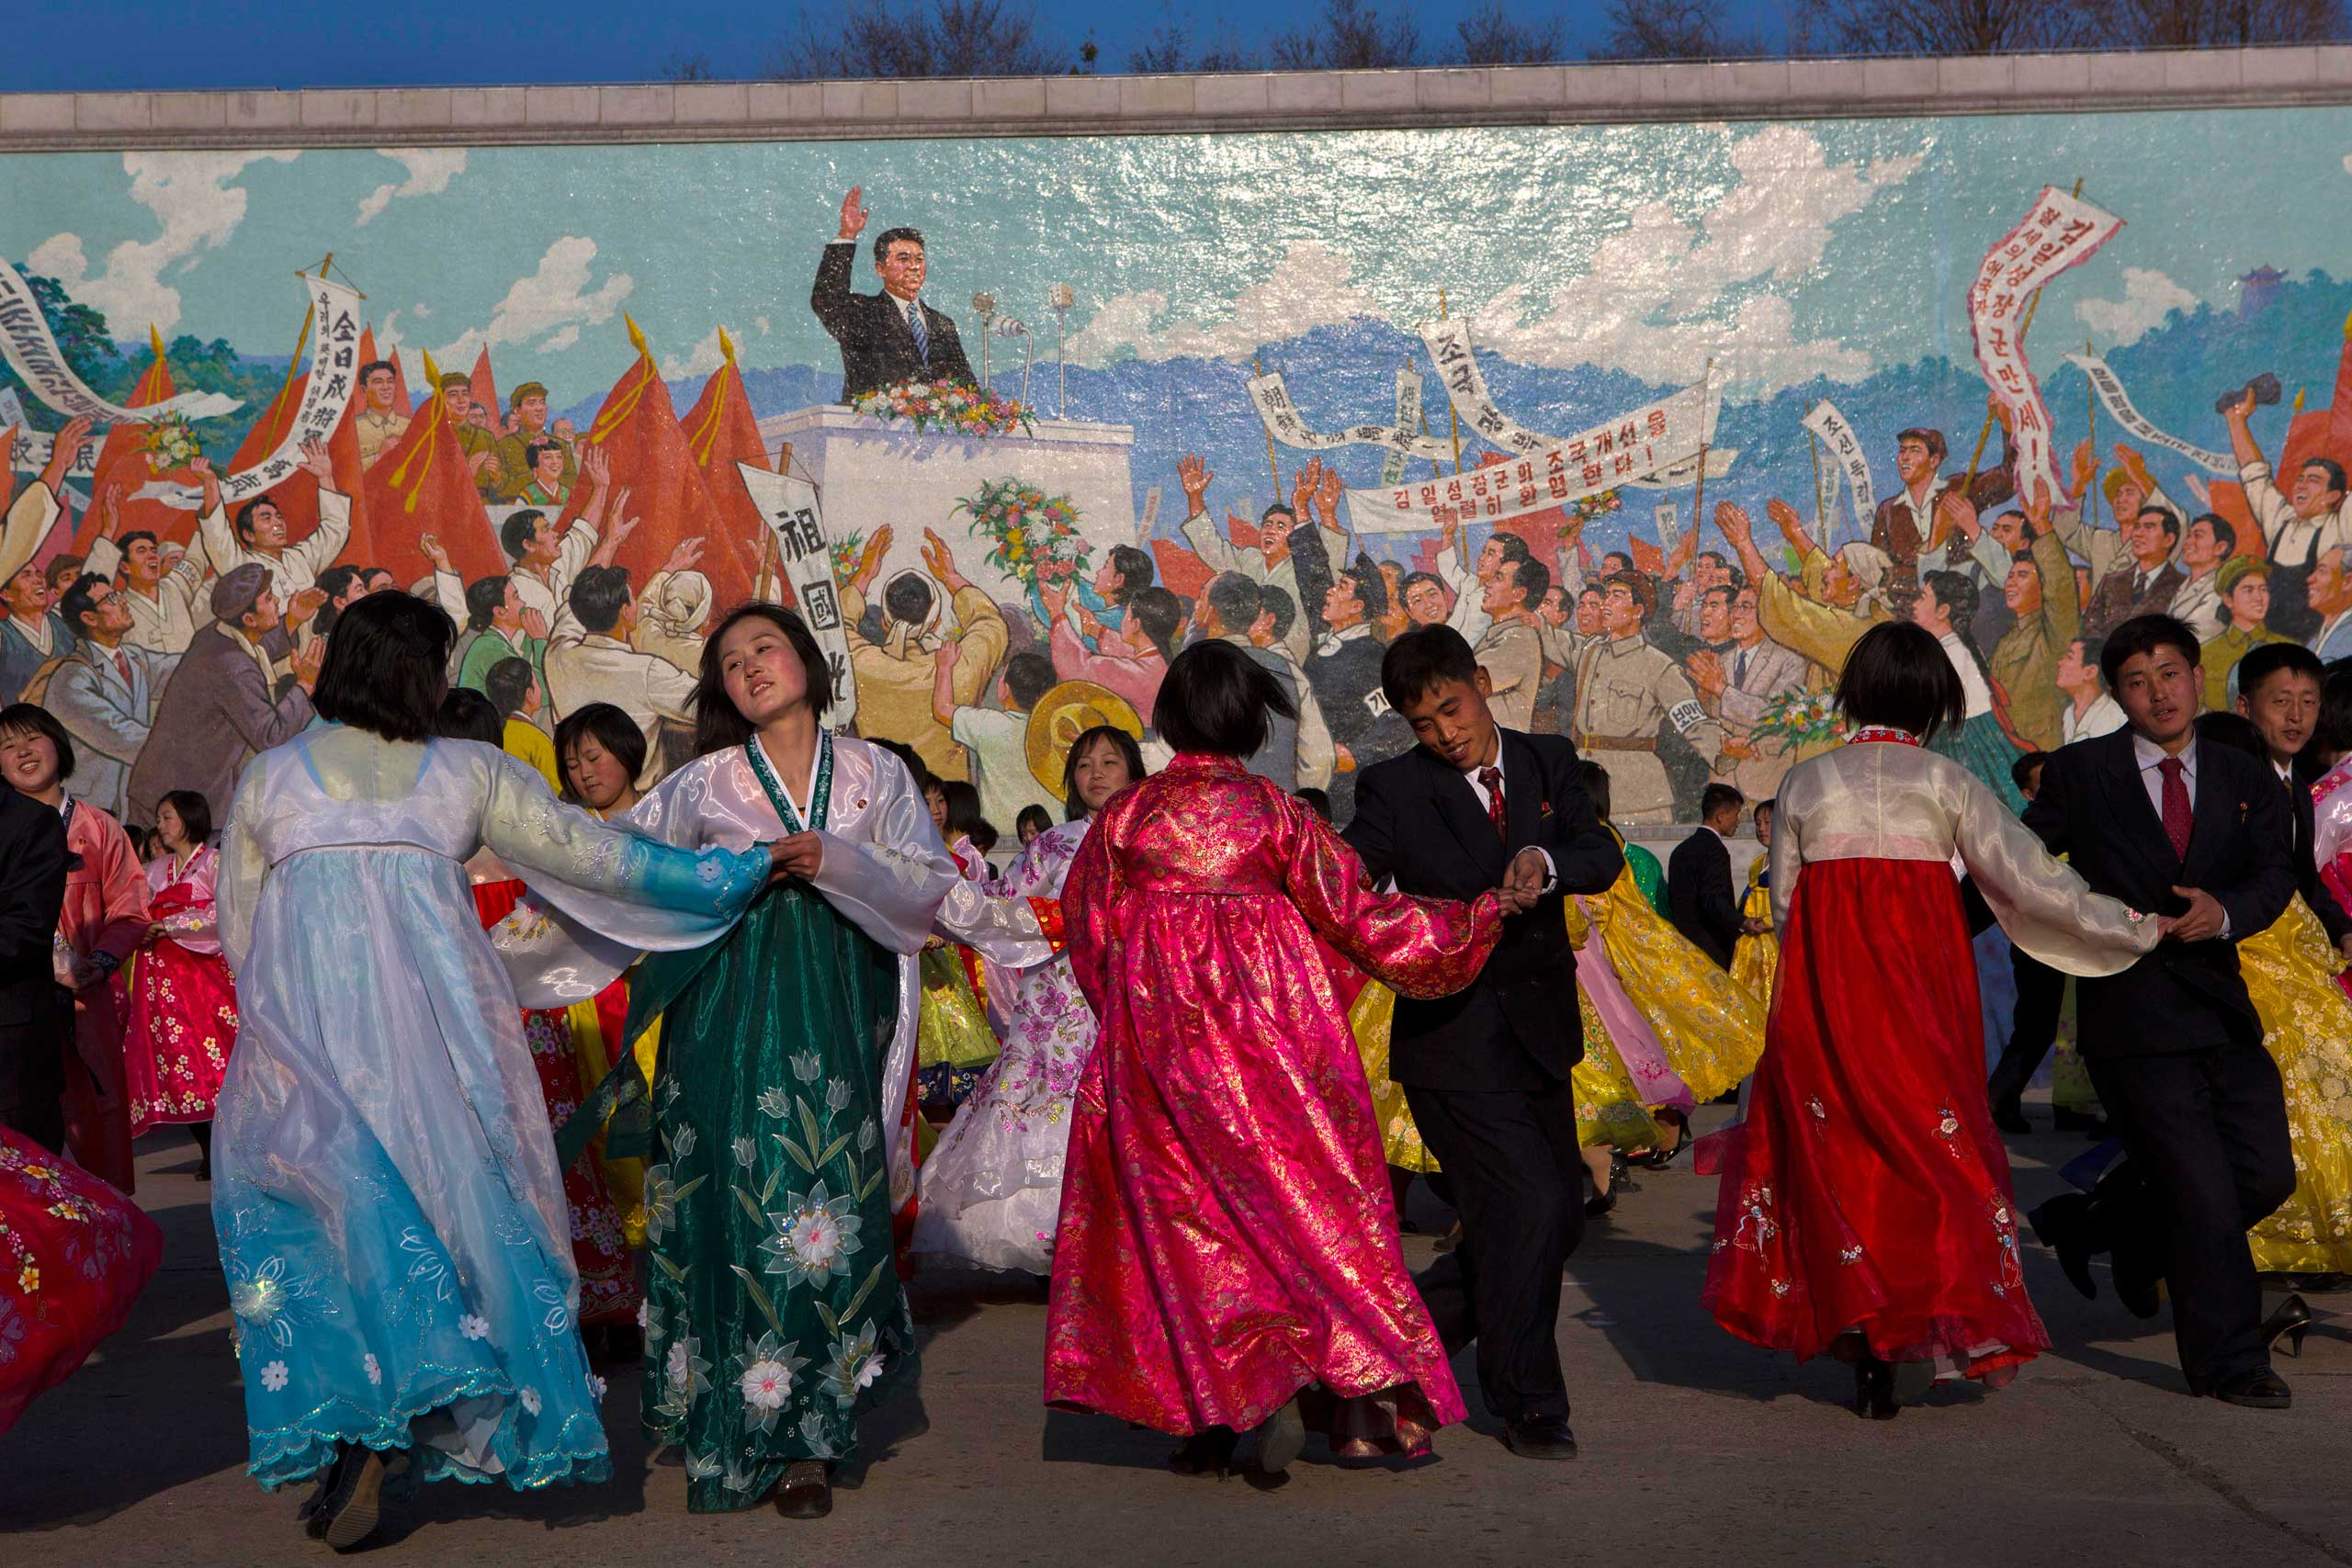 April 11, 2013. North Koreans dance together beneath a mosaic painting of the late leader Kim Il Sung during a mass folk dancing gathering in Pyongyang to mark the anniversary of the first of many titles of power given to leader Kim Jong Un after the death of his father Kim Jong Il.